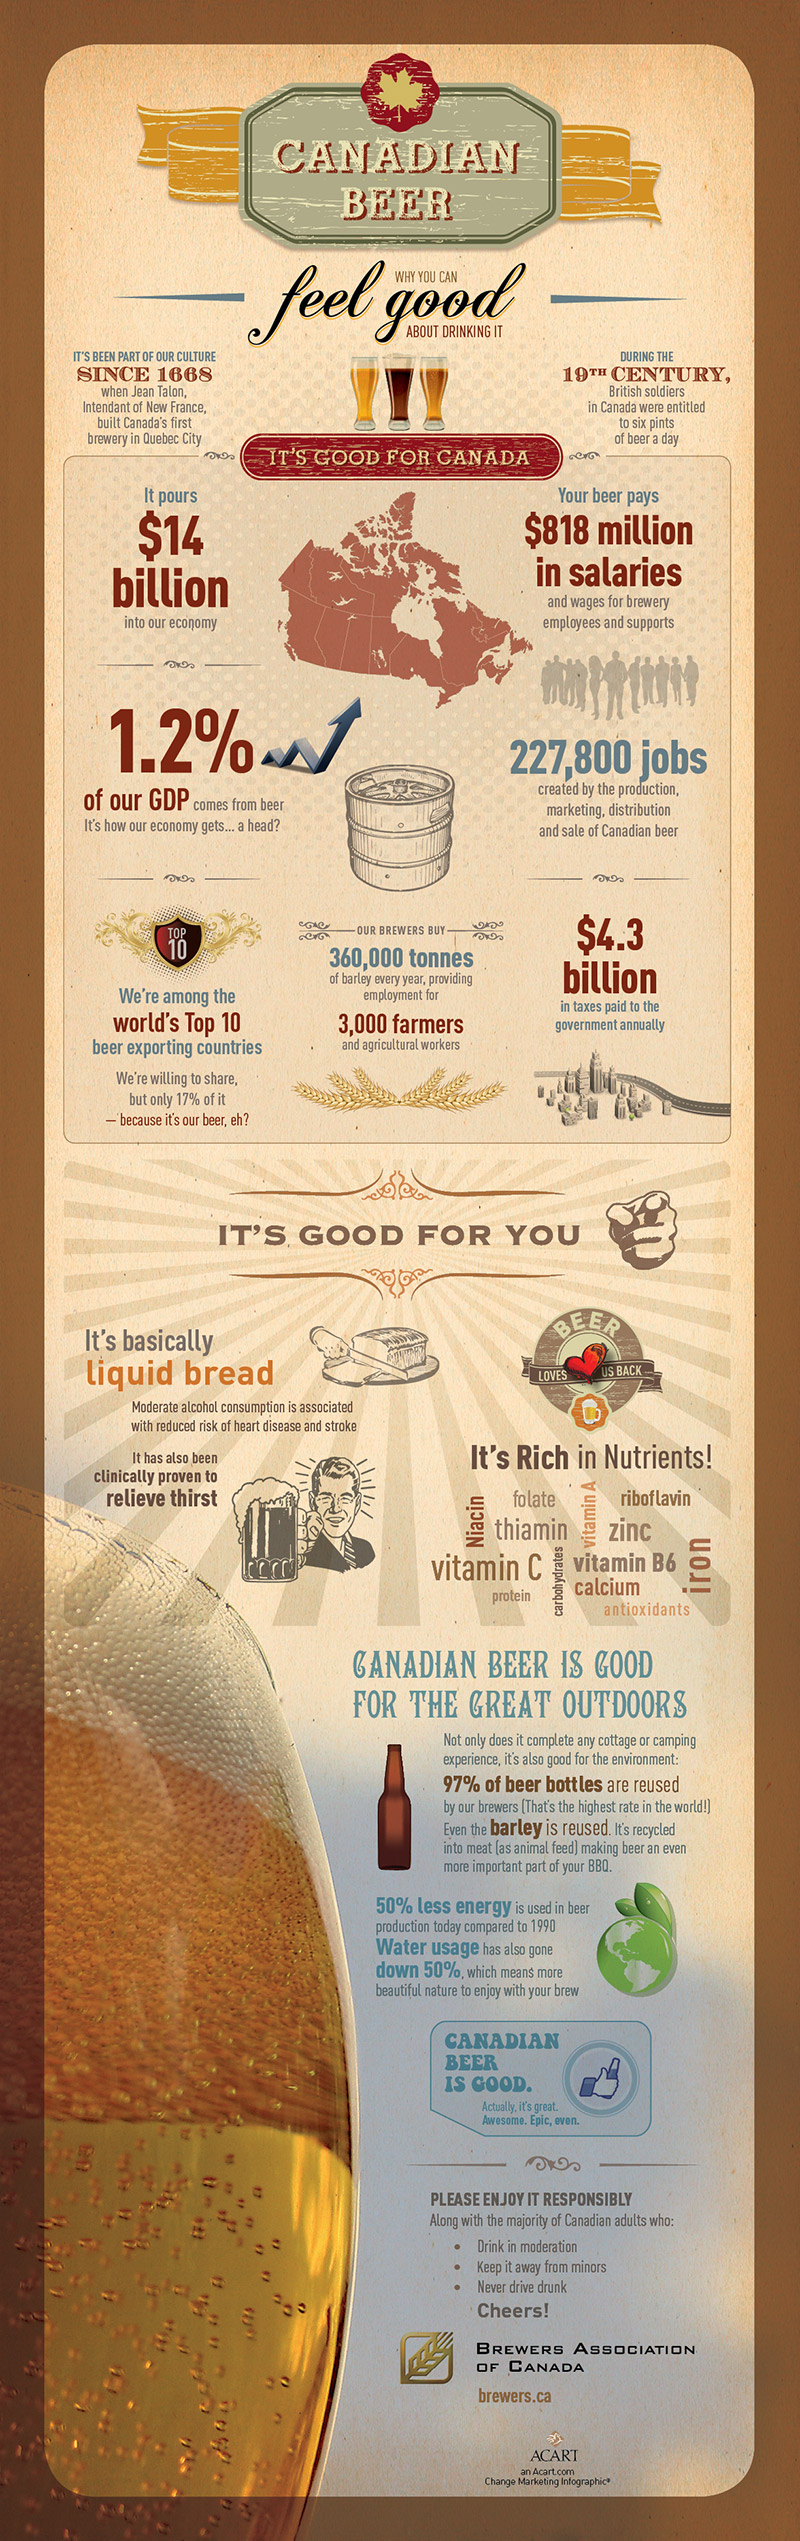 Brewers Association of Canada infographic: why you can feel good about drinking Canadian beer